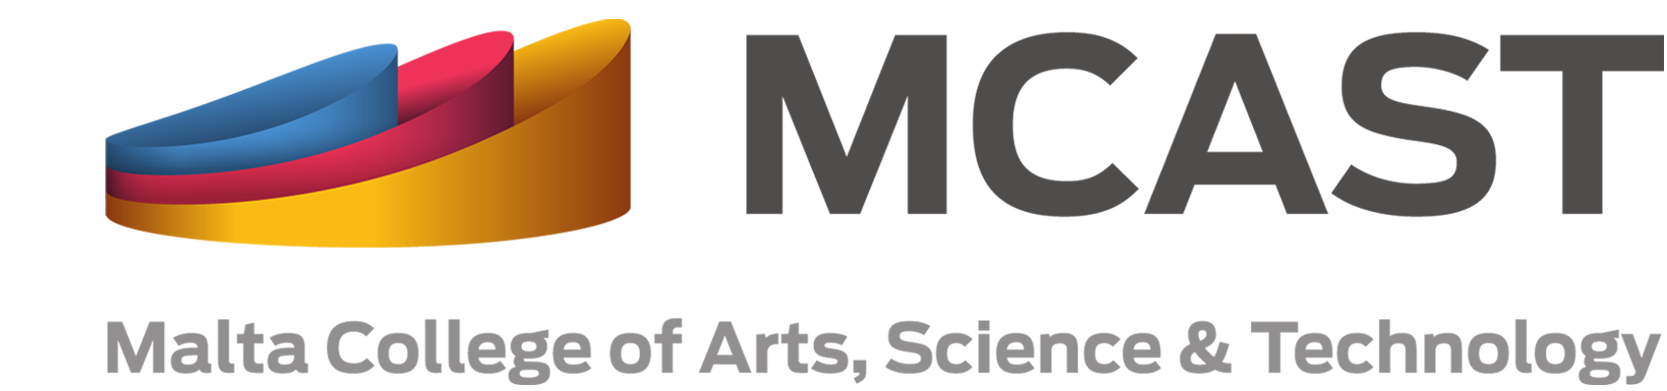 MCAST – The Malta College of Arts, Science & Technology